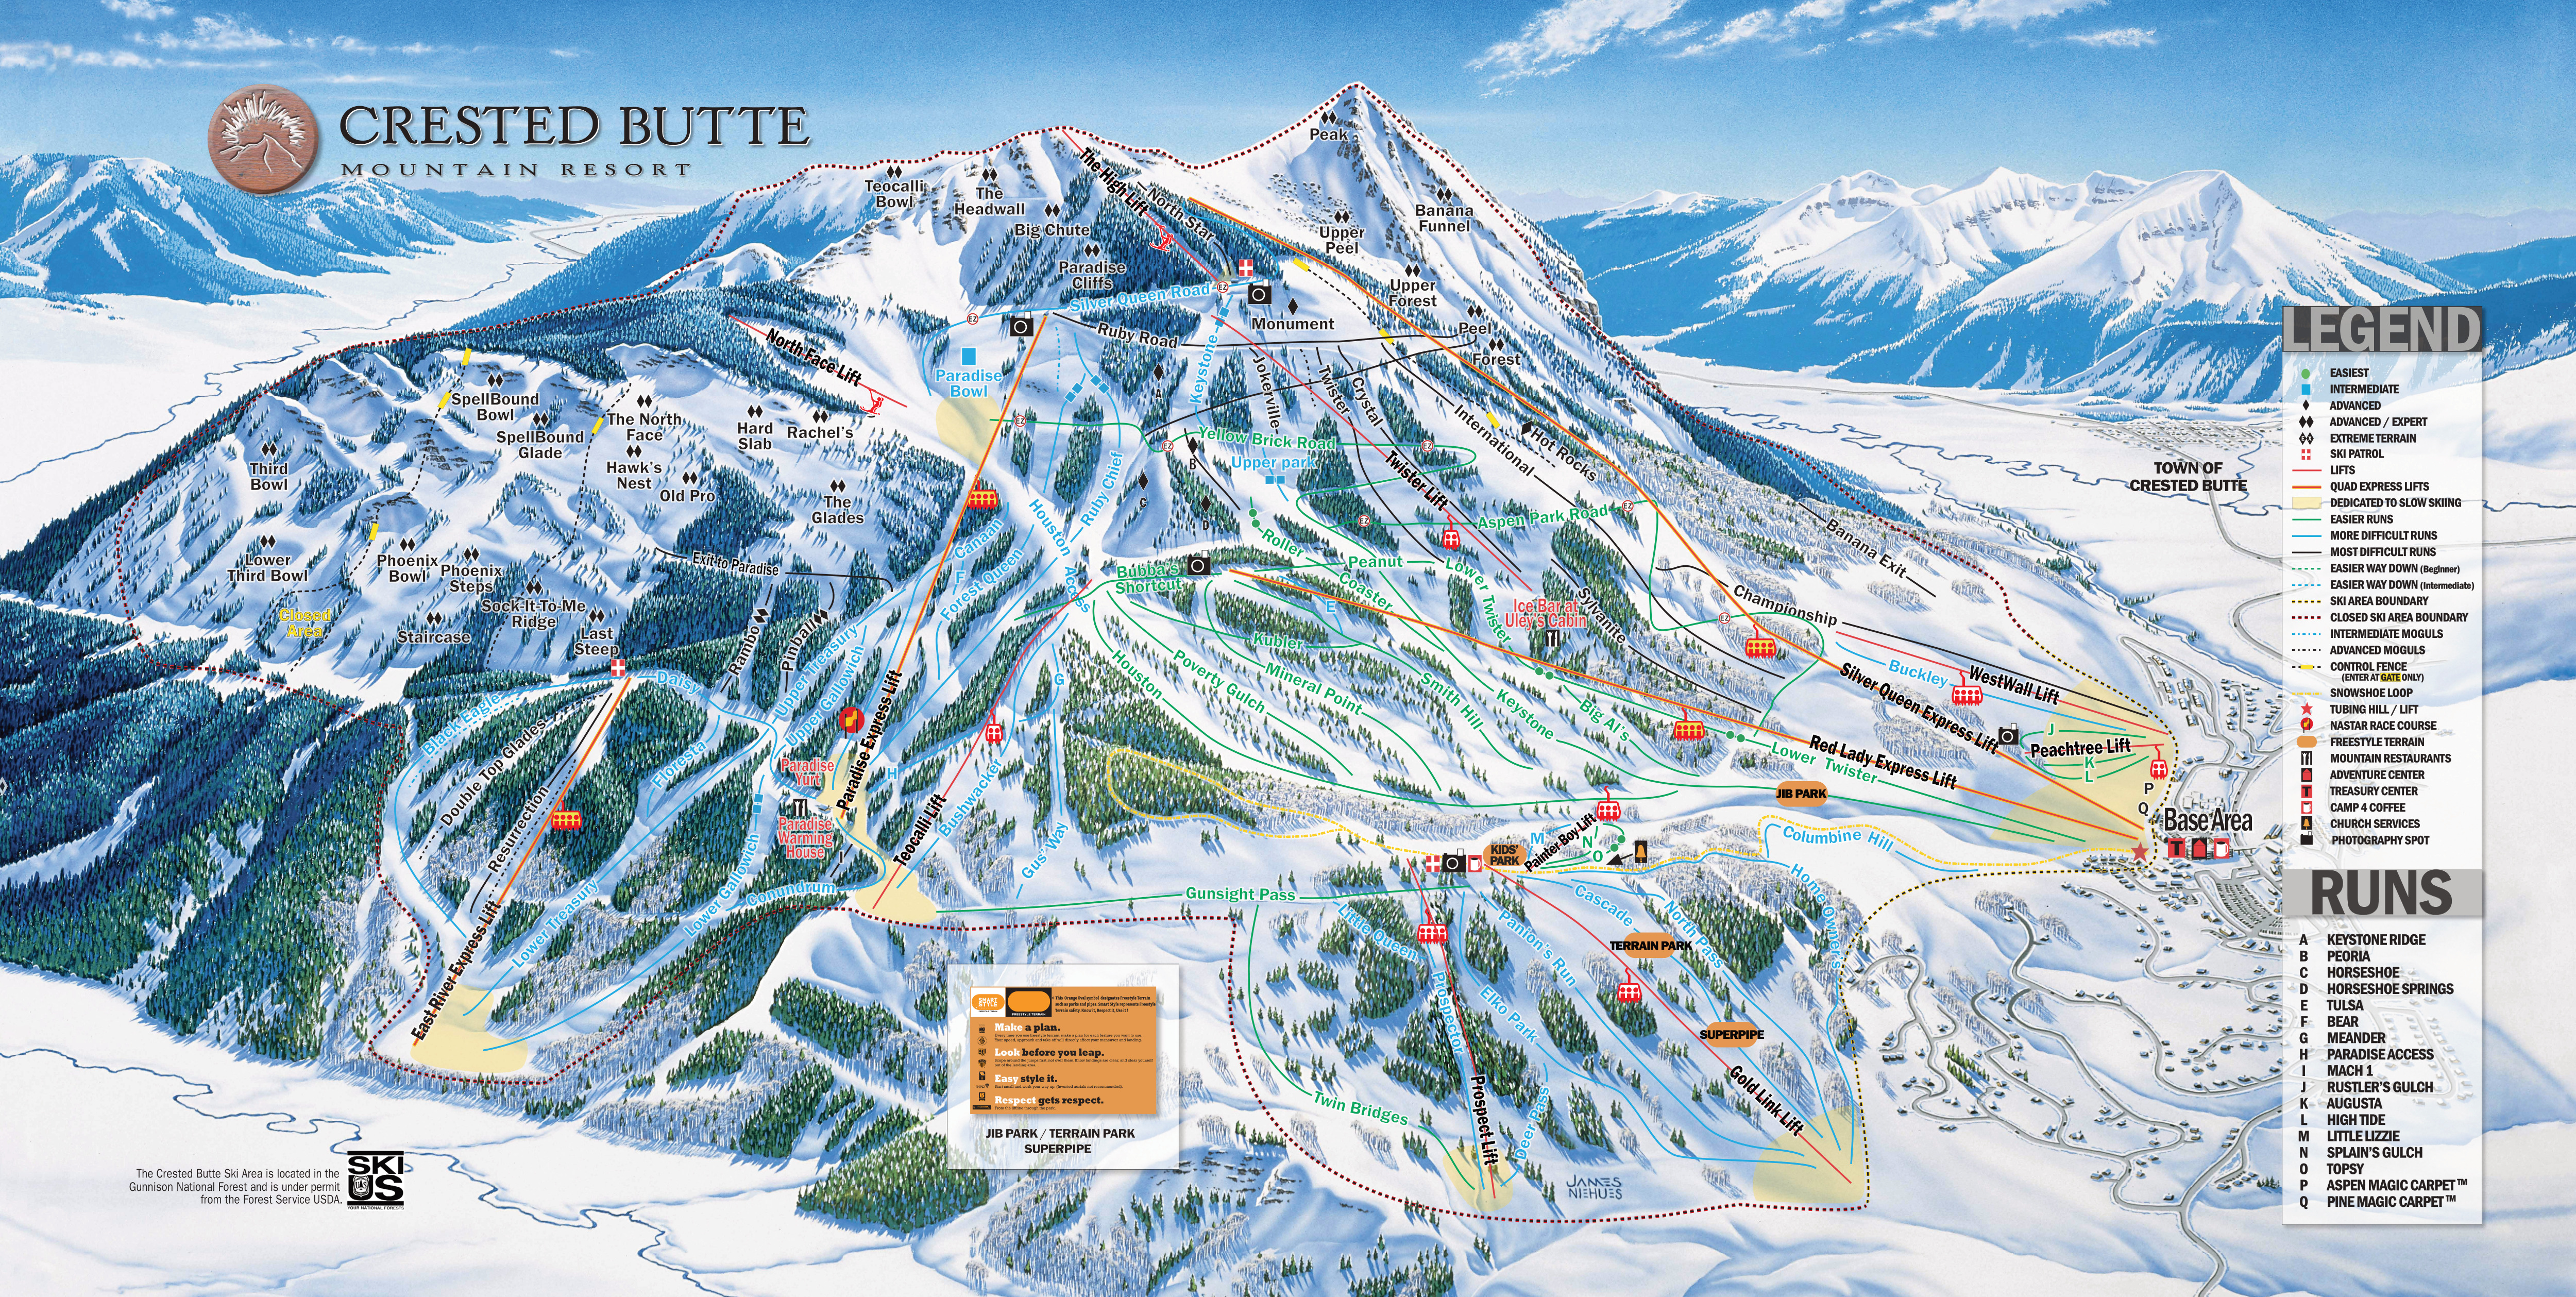 Crested Butte Map Crested Butte Mountain Resort   SkiMap.org